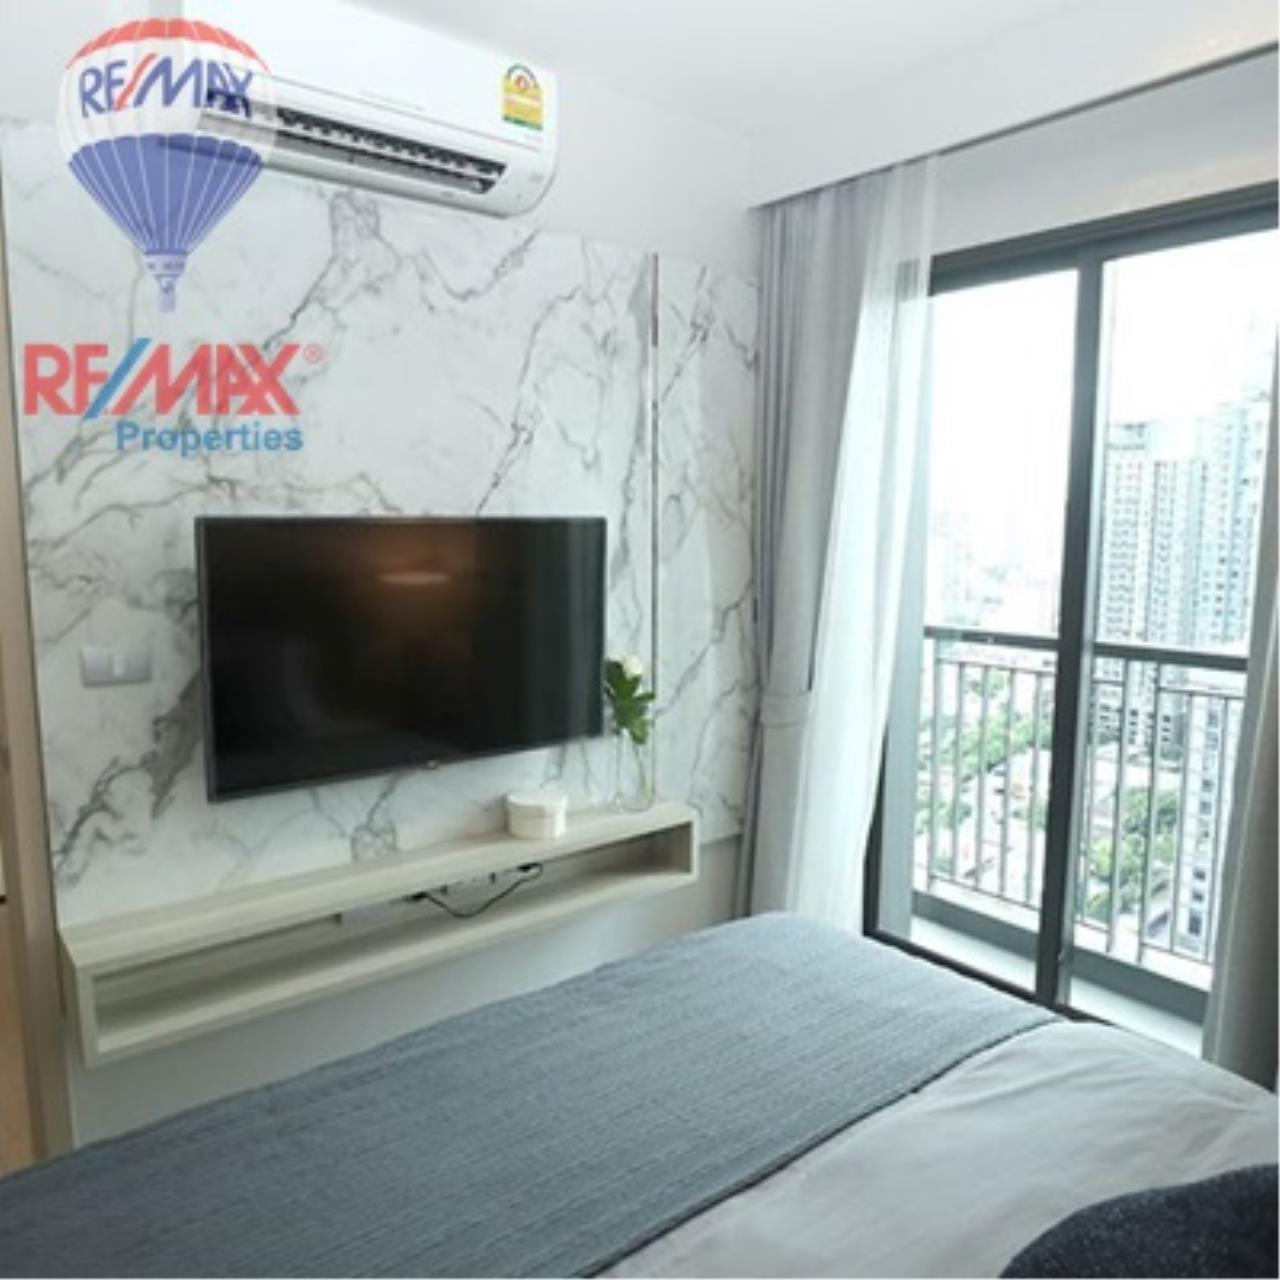 RE/MAX Properties Agency's FOR SALE - RHYTHM SUKHUMVIT 36-38 1 BED 33 SQM  2